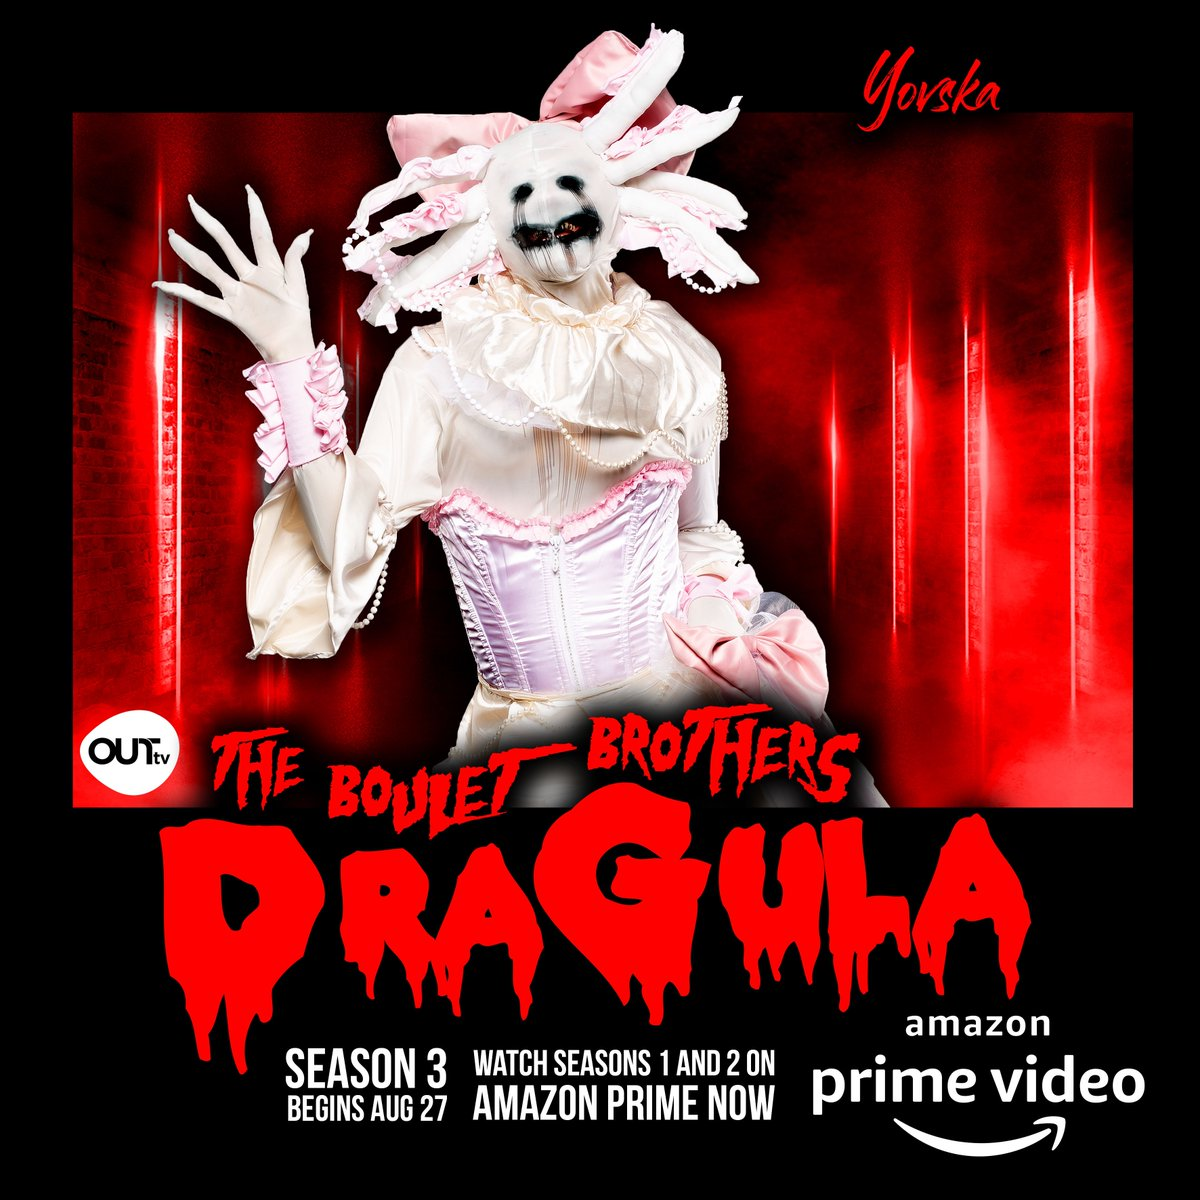 AUG 27! @bouletbrothers @bouletbrothersdragula #dragula3 #bouletbrothersdragula #bouletbrothers #horror #horrortv  #dragula #horrorgram #dragqueen #dragking #dragartist #dragmakeup #dragmonster (The Boulet Brothers Dragula is produced in association with @outtv)<br>http://pic.twitter.com/JWsMLYUBmT